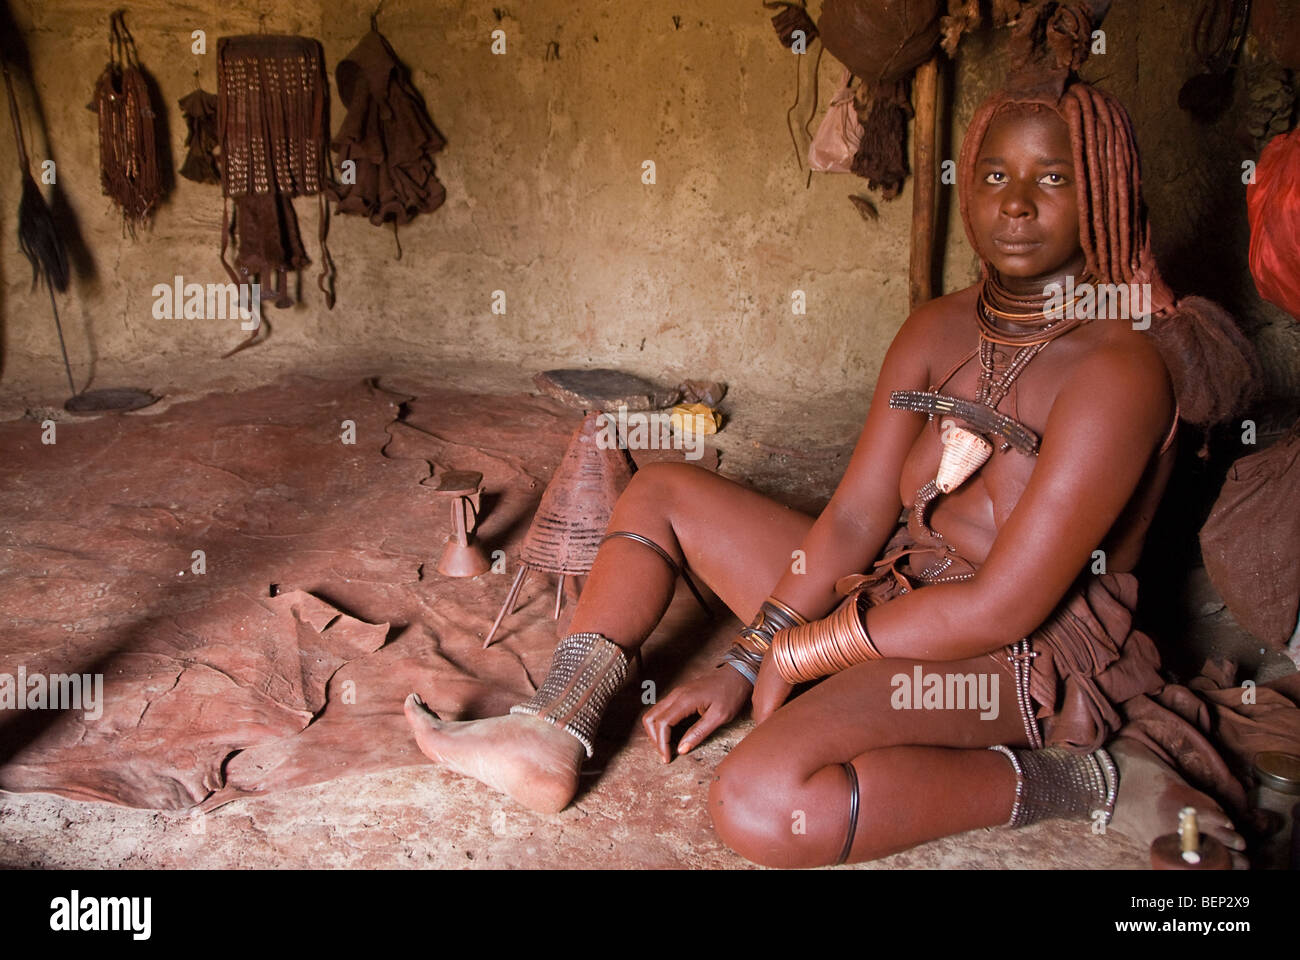 Himba woman in her hut in a village near Epupa Falls, Namibia, Africa. - Stock Image